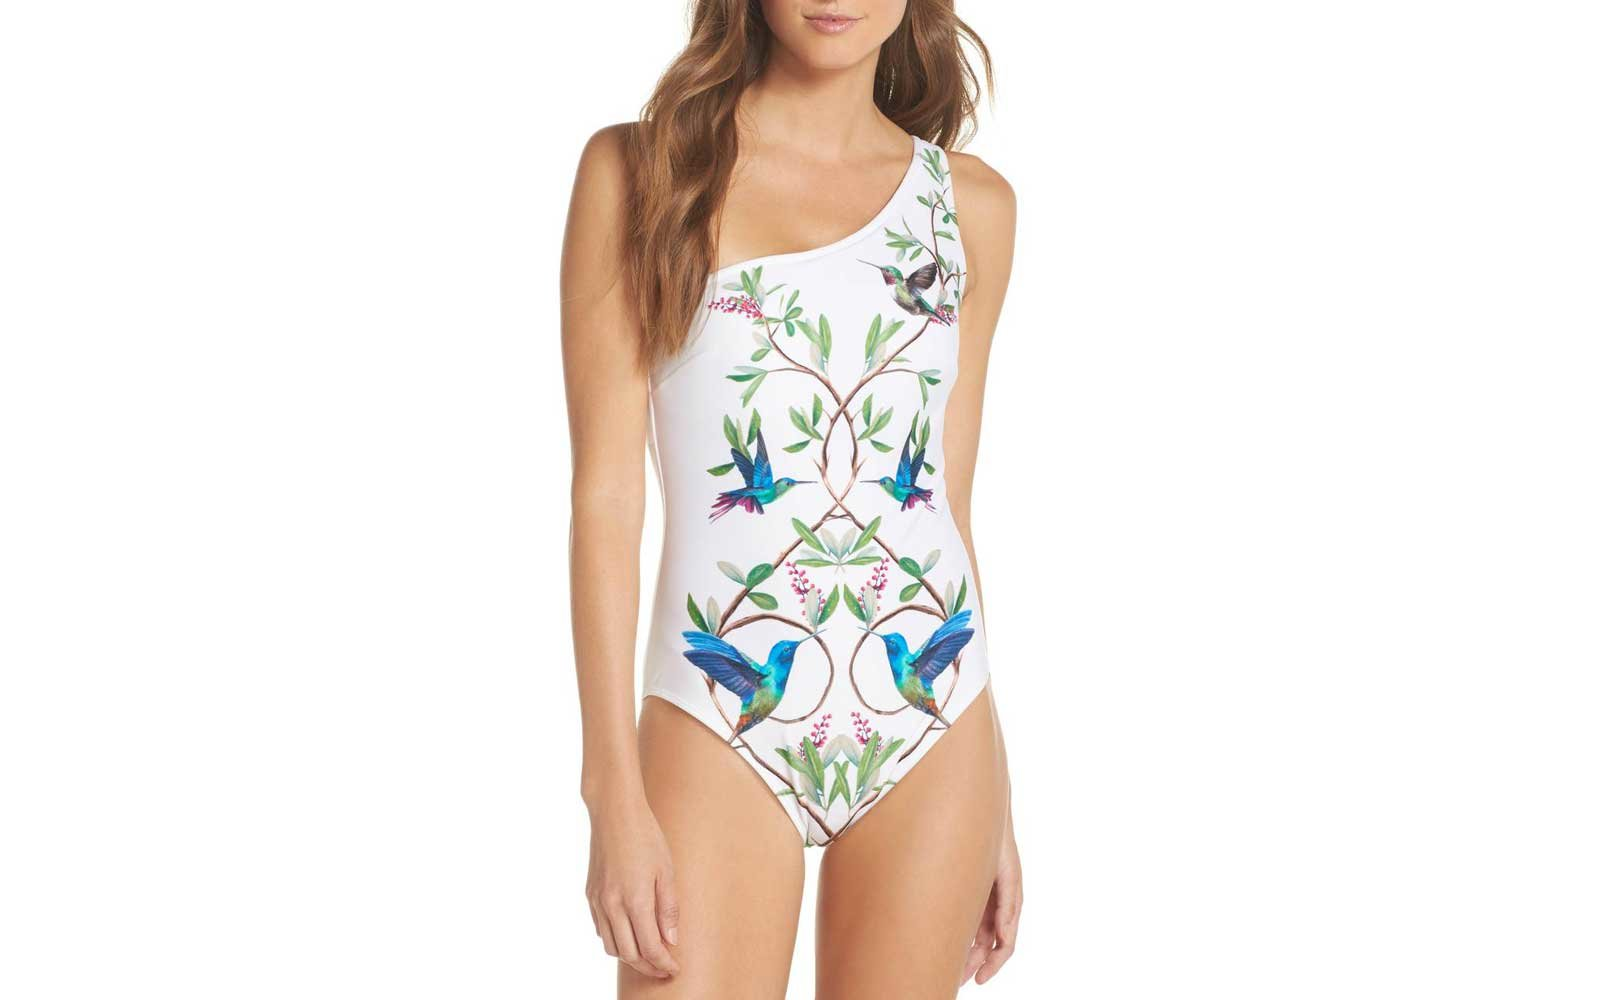 c27f3ace0d901 The Best Swimsuits for Spring Break | Travel + Leisure